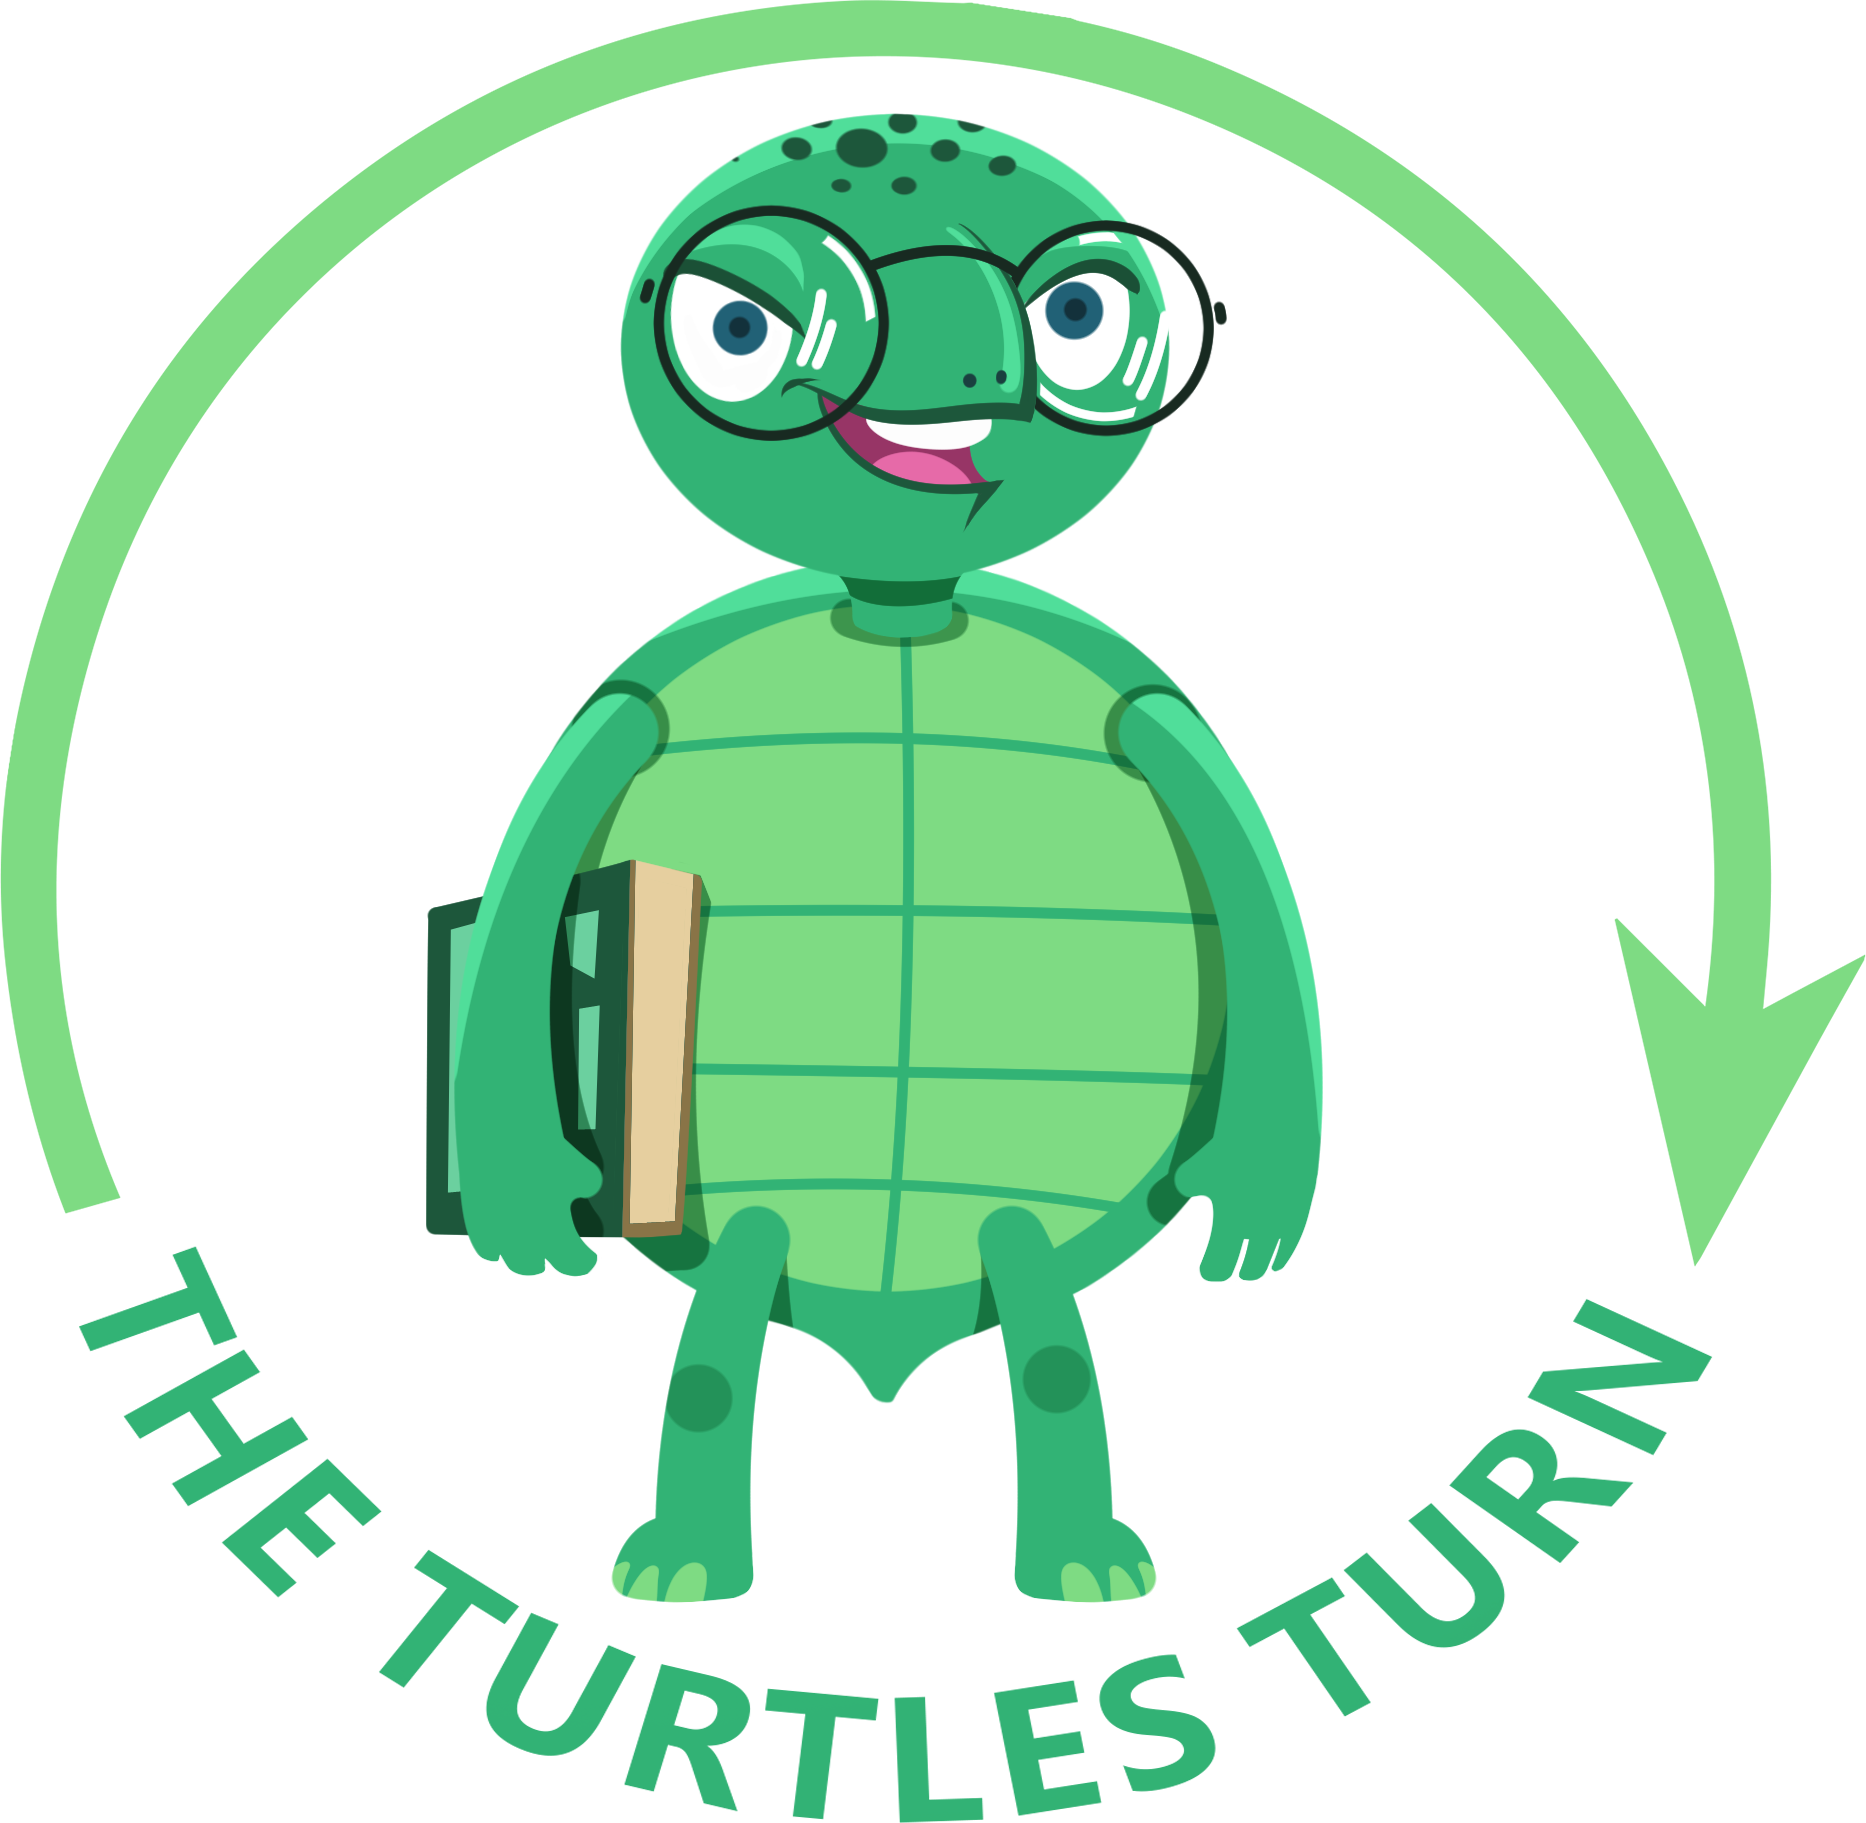 The Turtles Turn | T3 Communications Limited